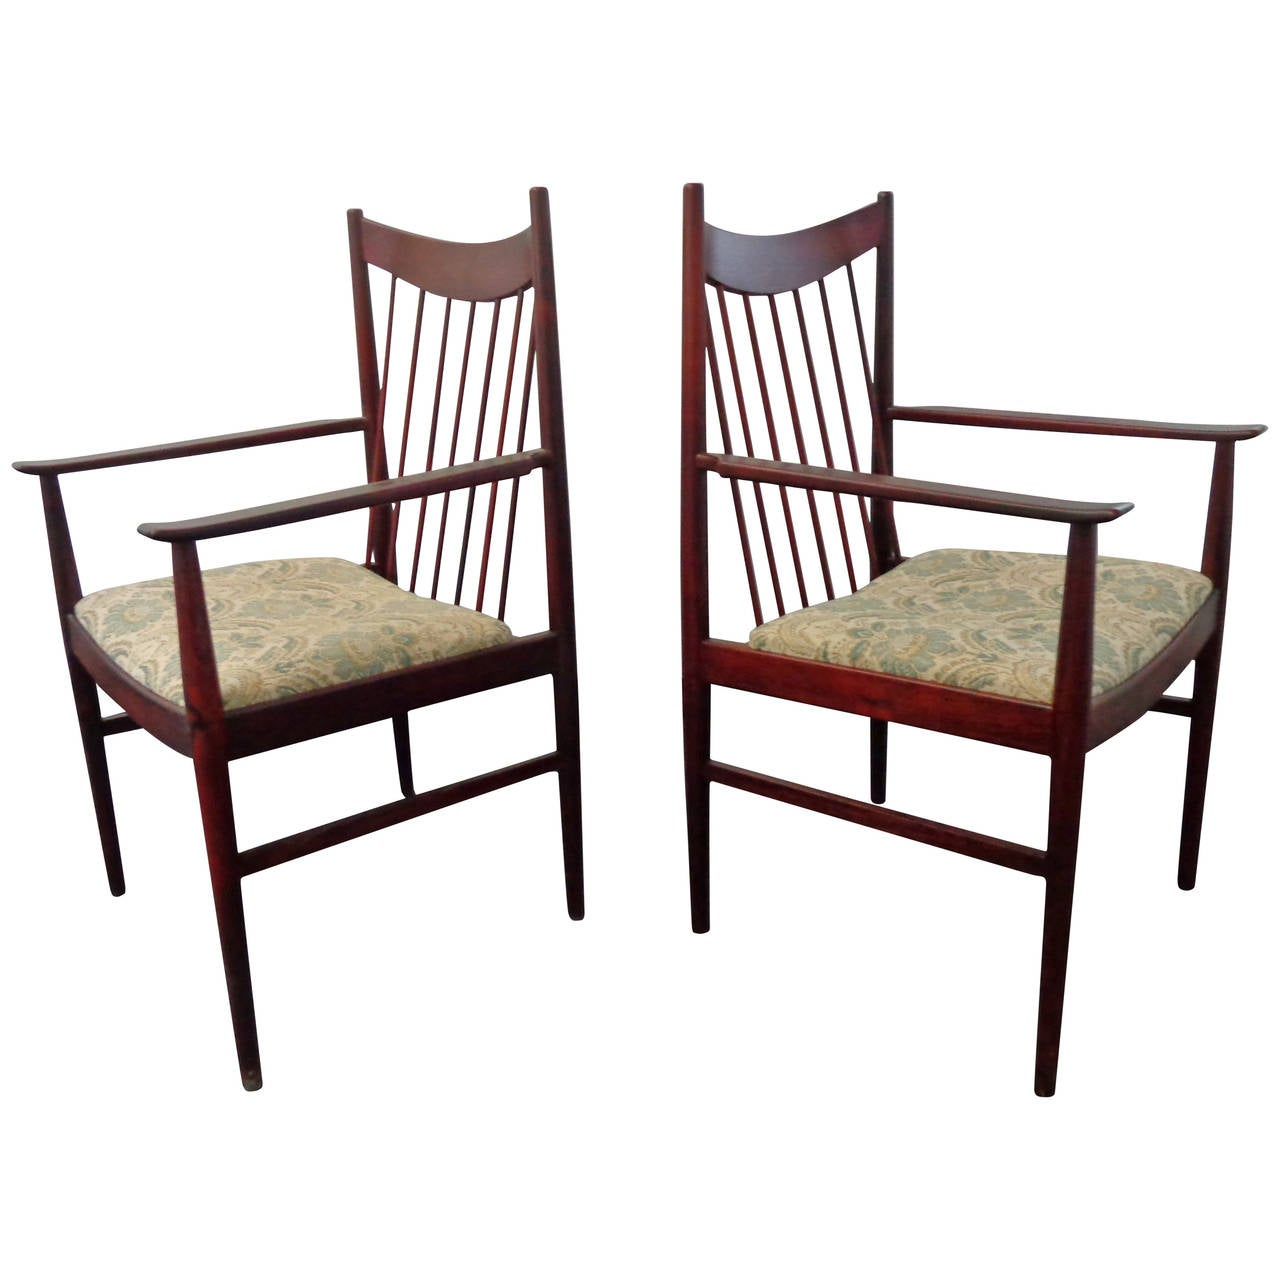 Merveilleux Arne Vodder Rosewood Chairs, Model 422 By Sibast, Including Two Armchairs  For Sale